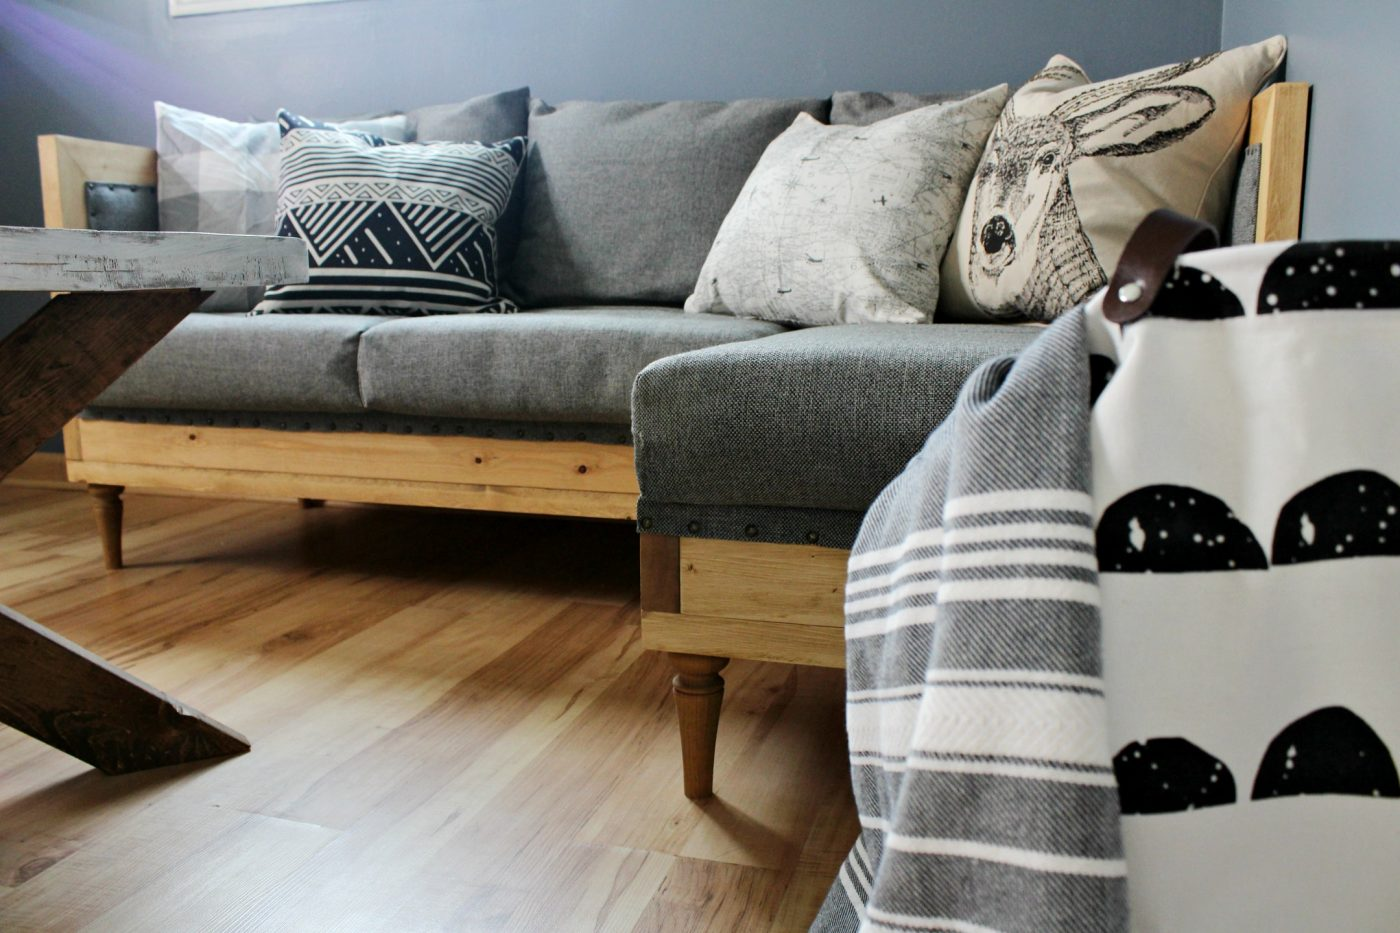 How to upholster a wood frame couch--free building plans to build your own & Build Your Own DIY Upholstered Couch